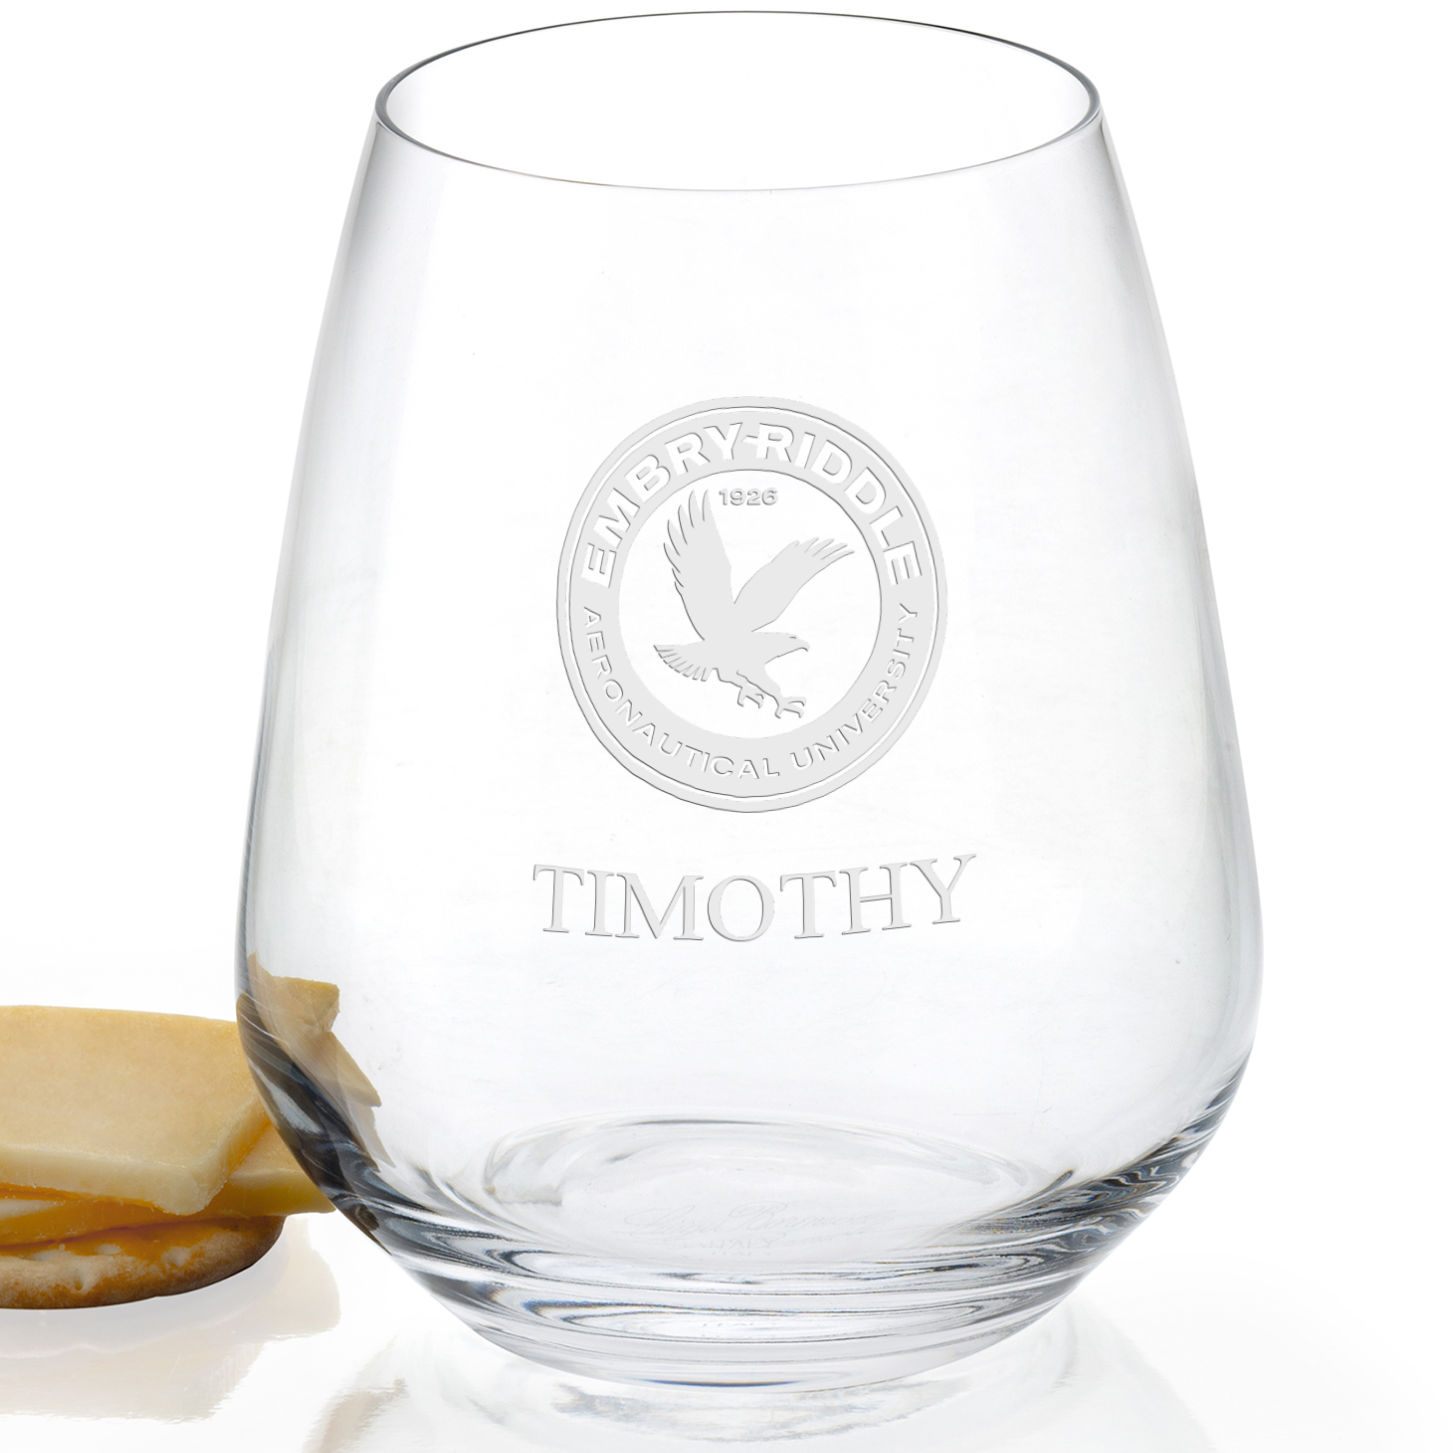 Embry-Riddle Stemless Wine Glasses - Set of 4 - Image 2